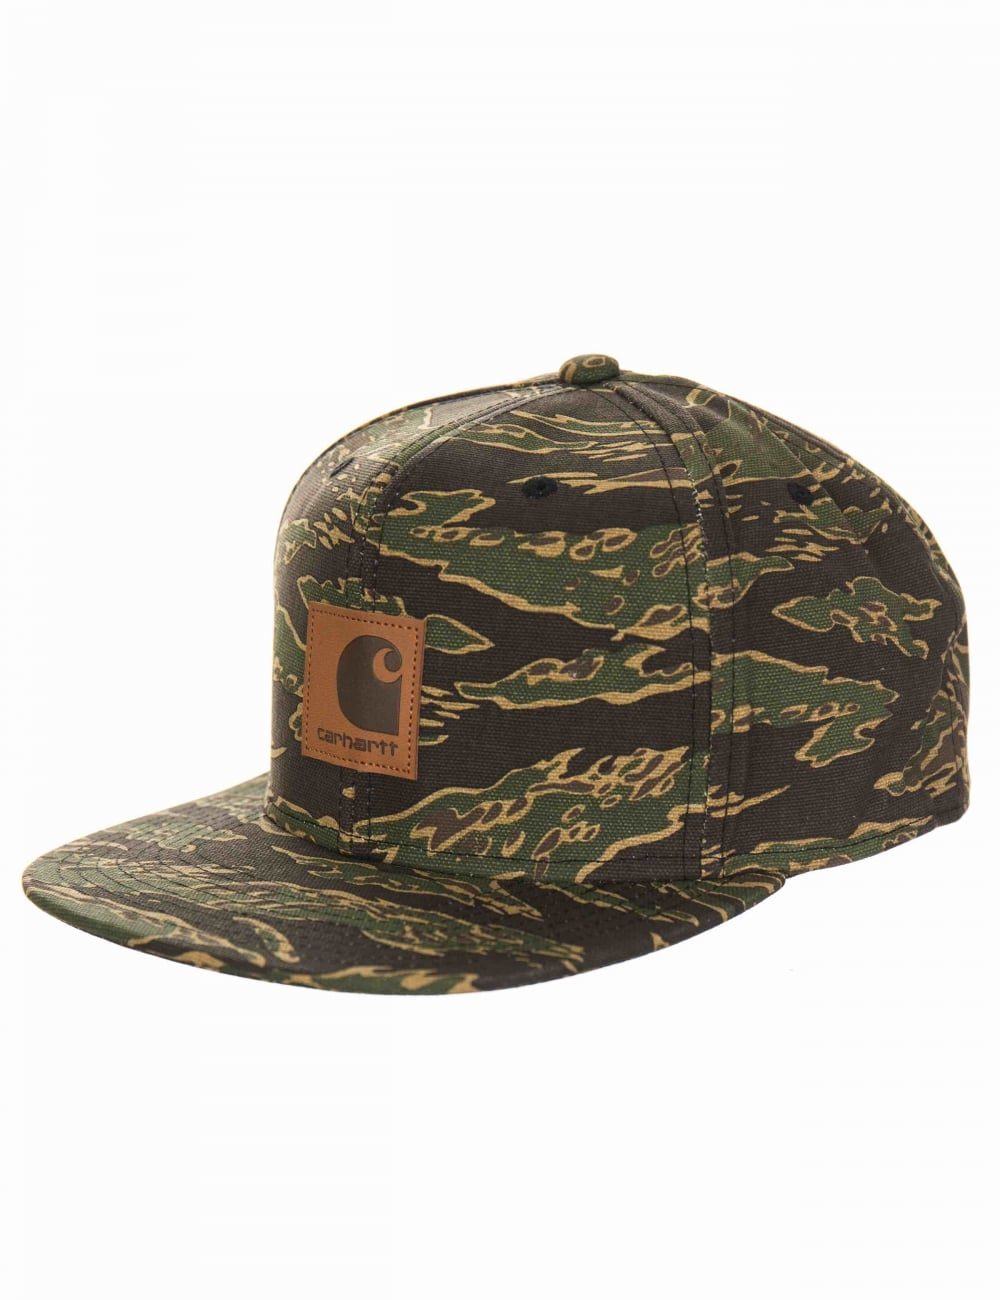 Carhartt WIP Logo Cap - Tiger Camo - Accessories from Fat Buddha ... b78be9382